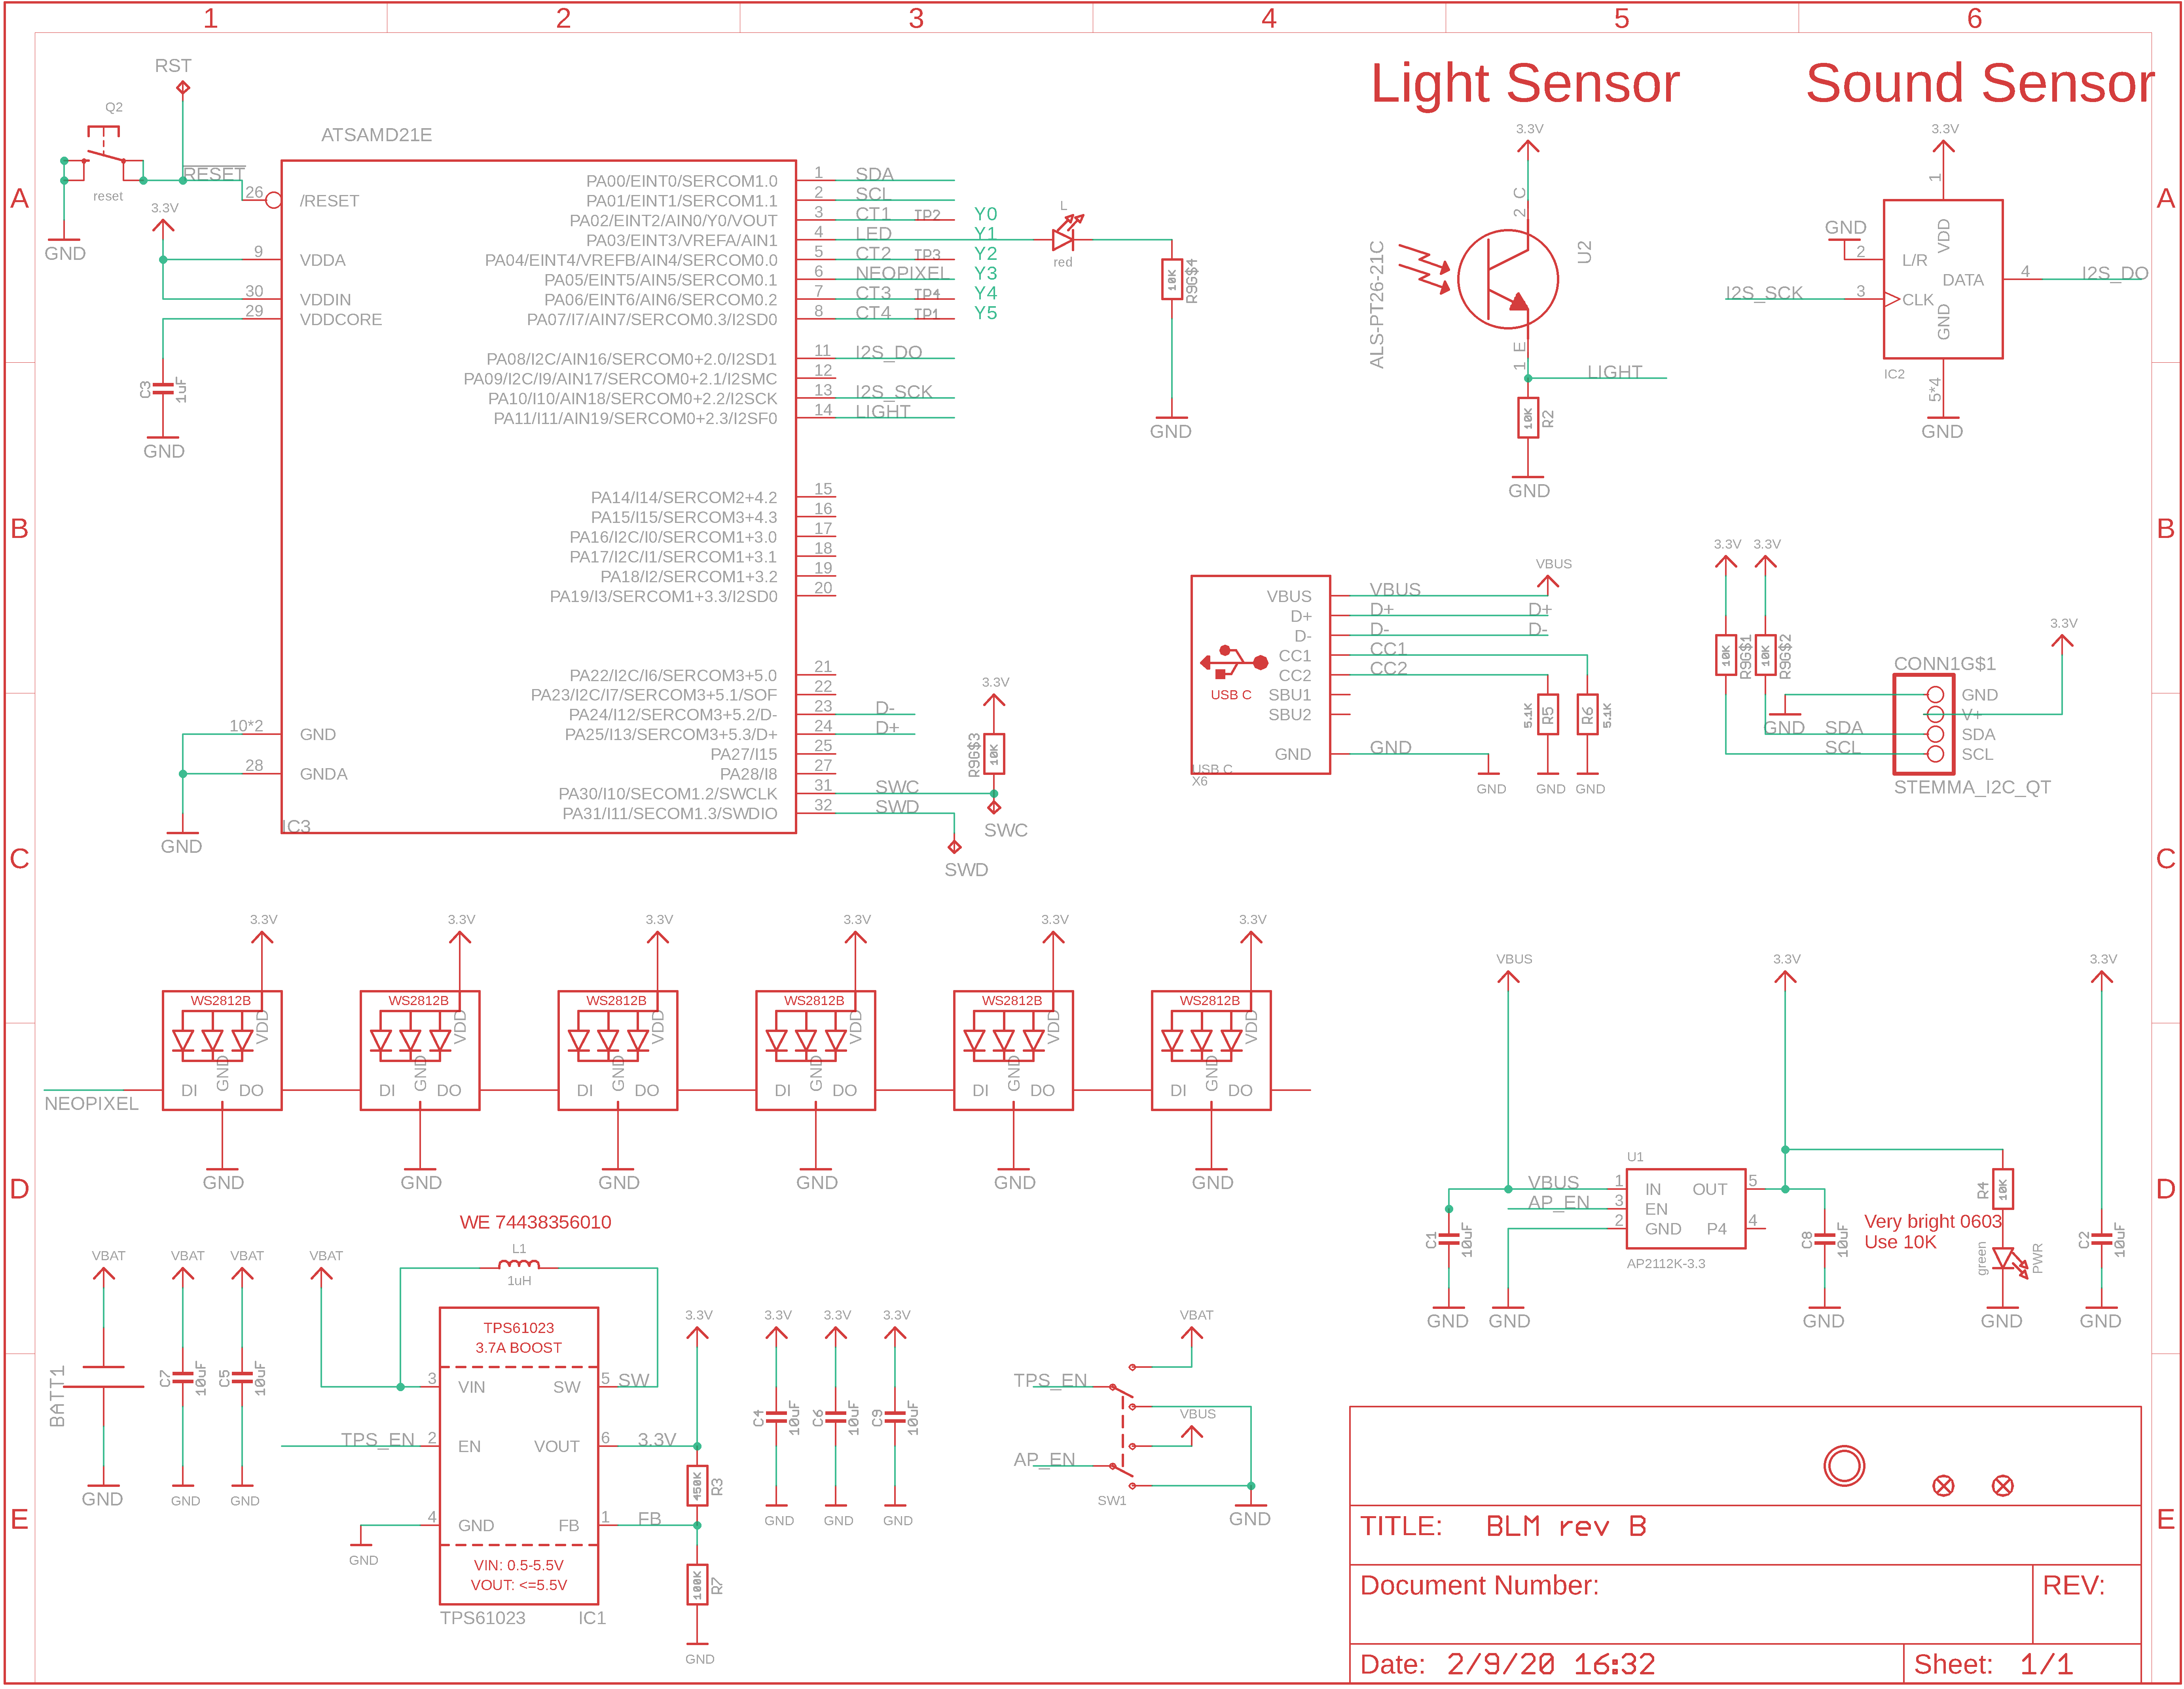 adafruit_products_BLM_sch.png